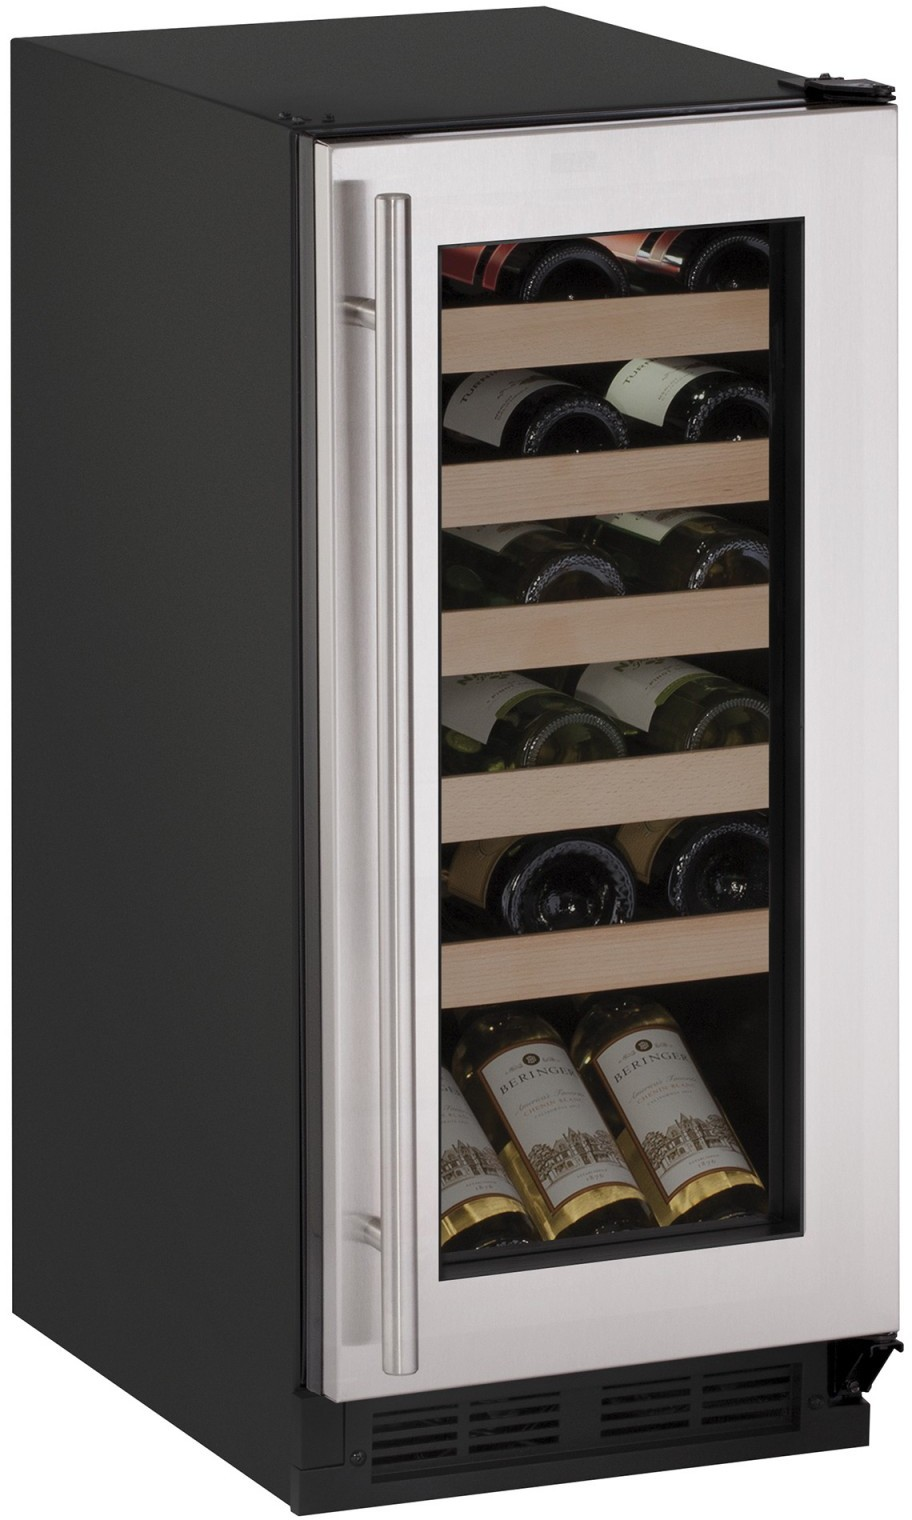 U Line U1215wcs00b 15 Inch Undercounter Wine Storage With